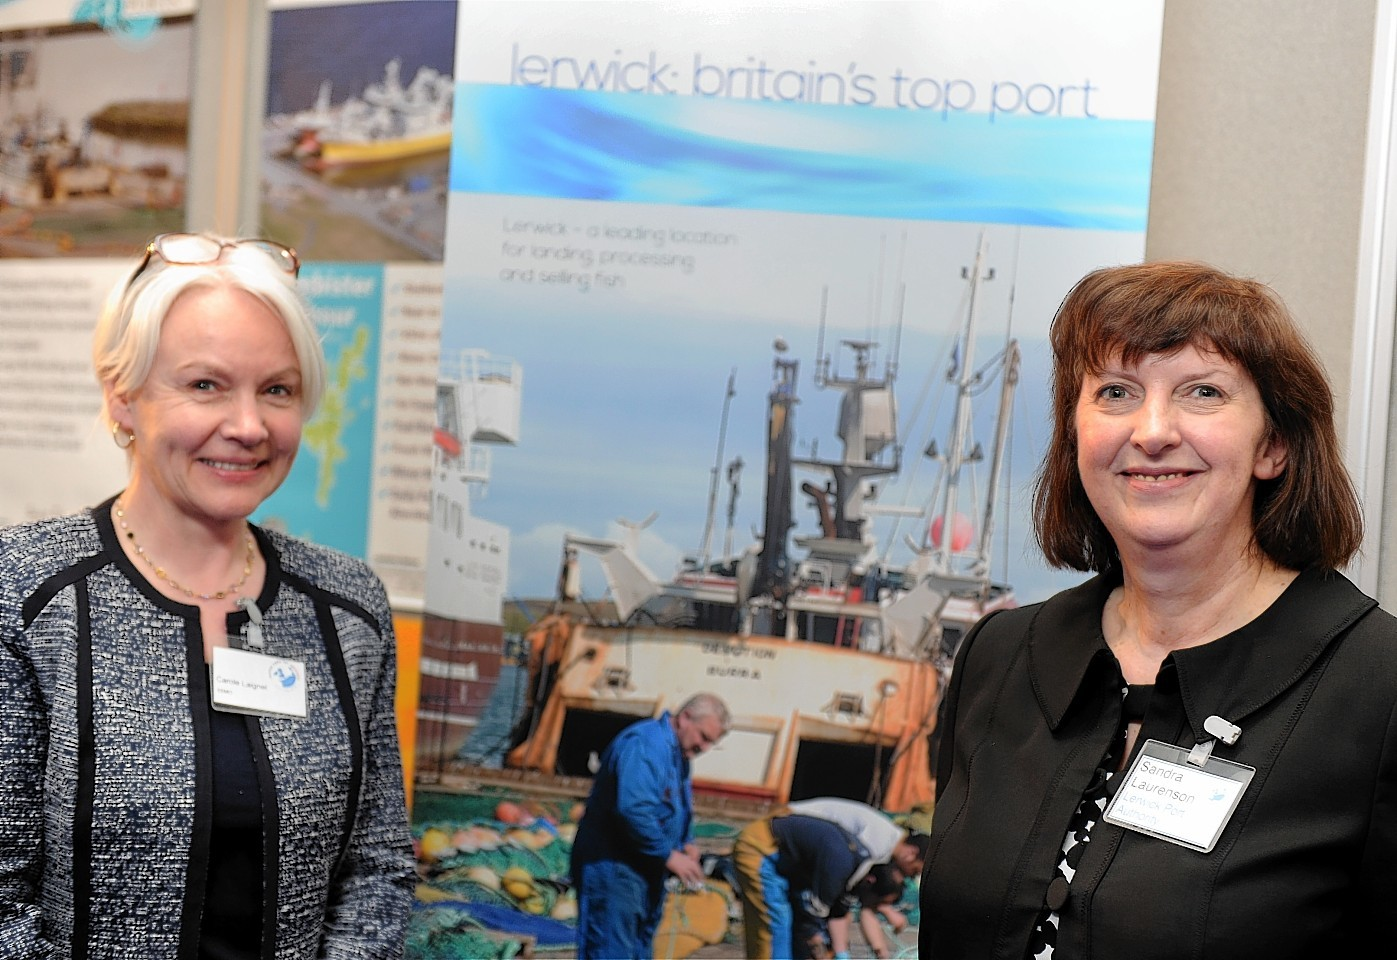 The Scottish fishing exhibition at AECC, Aberdeen.  In the picture are Carole Laignel, Shetland seafood centre, left and Sandra Laurenson, chief executive, Lerwick Port authority.